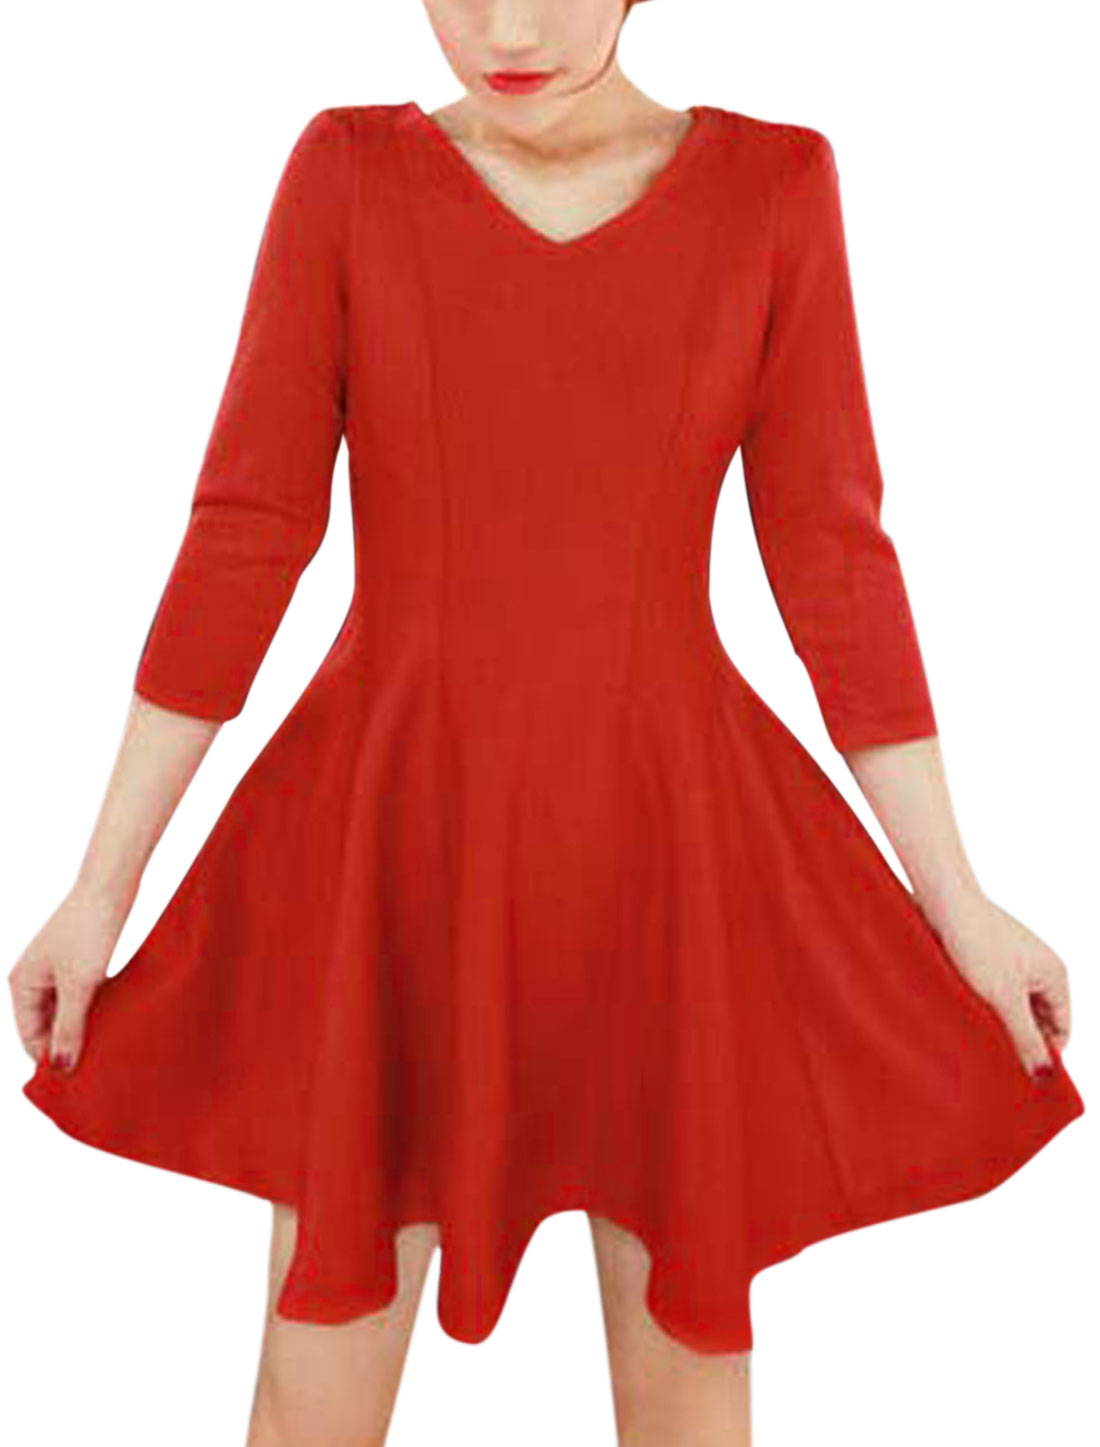 Ladies 3/4 Sleeves Round Neck Slipover Casual Dresses Red S